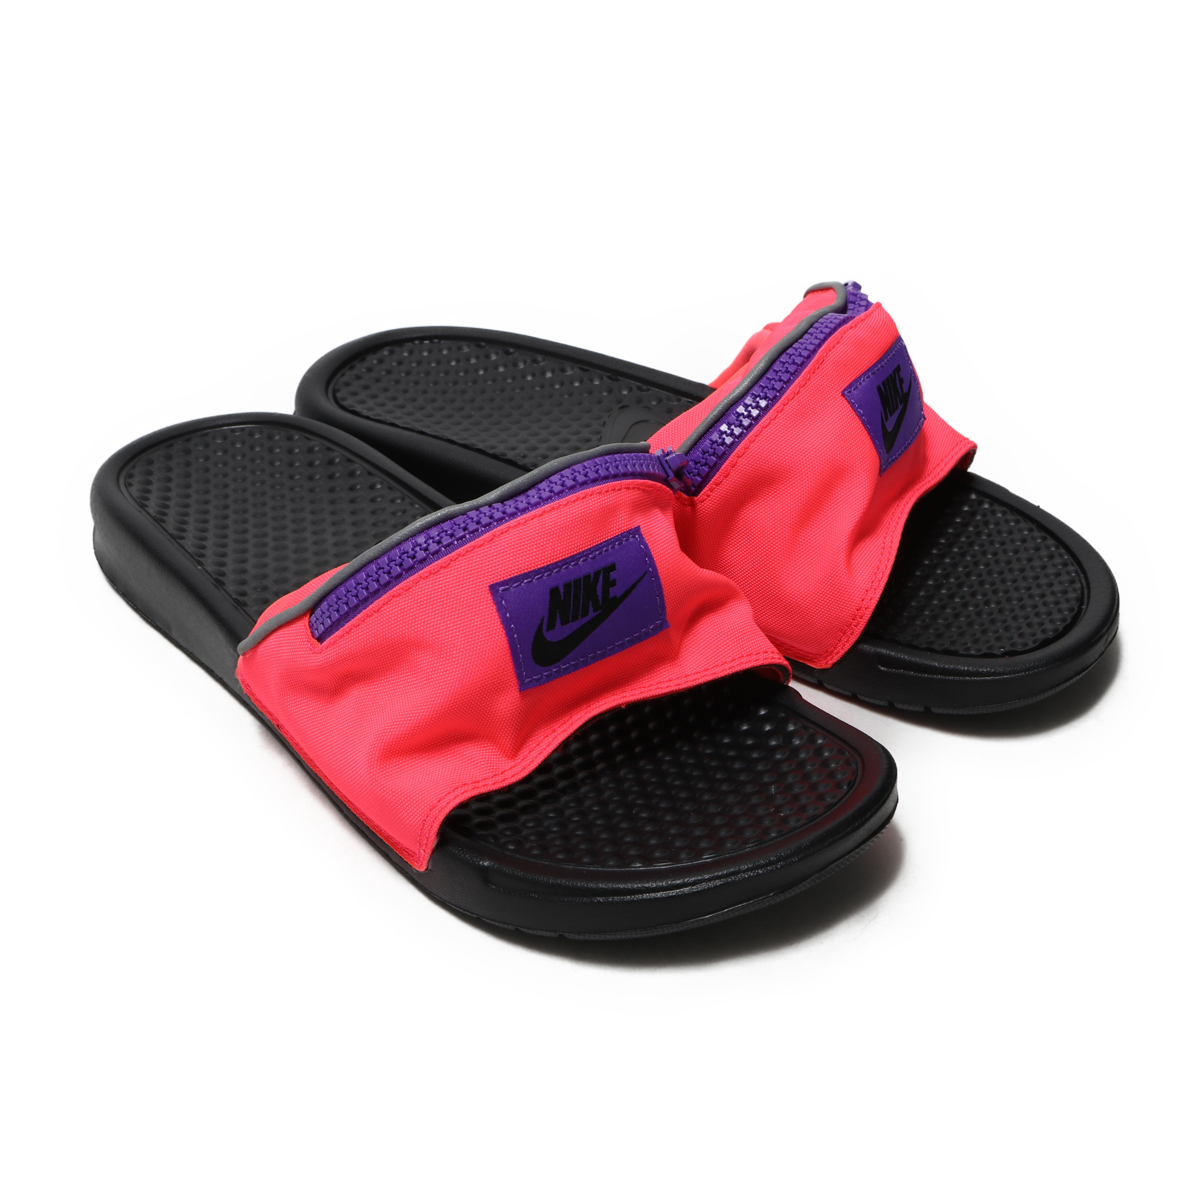 6e1478f03060 The lightweight sandals which comprised the pocket with the zipper which  could hold an accessory safely to the strap.